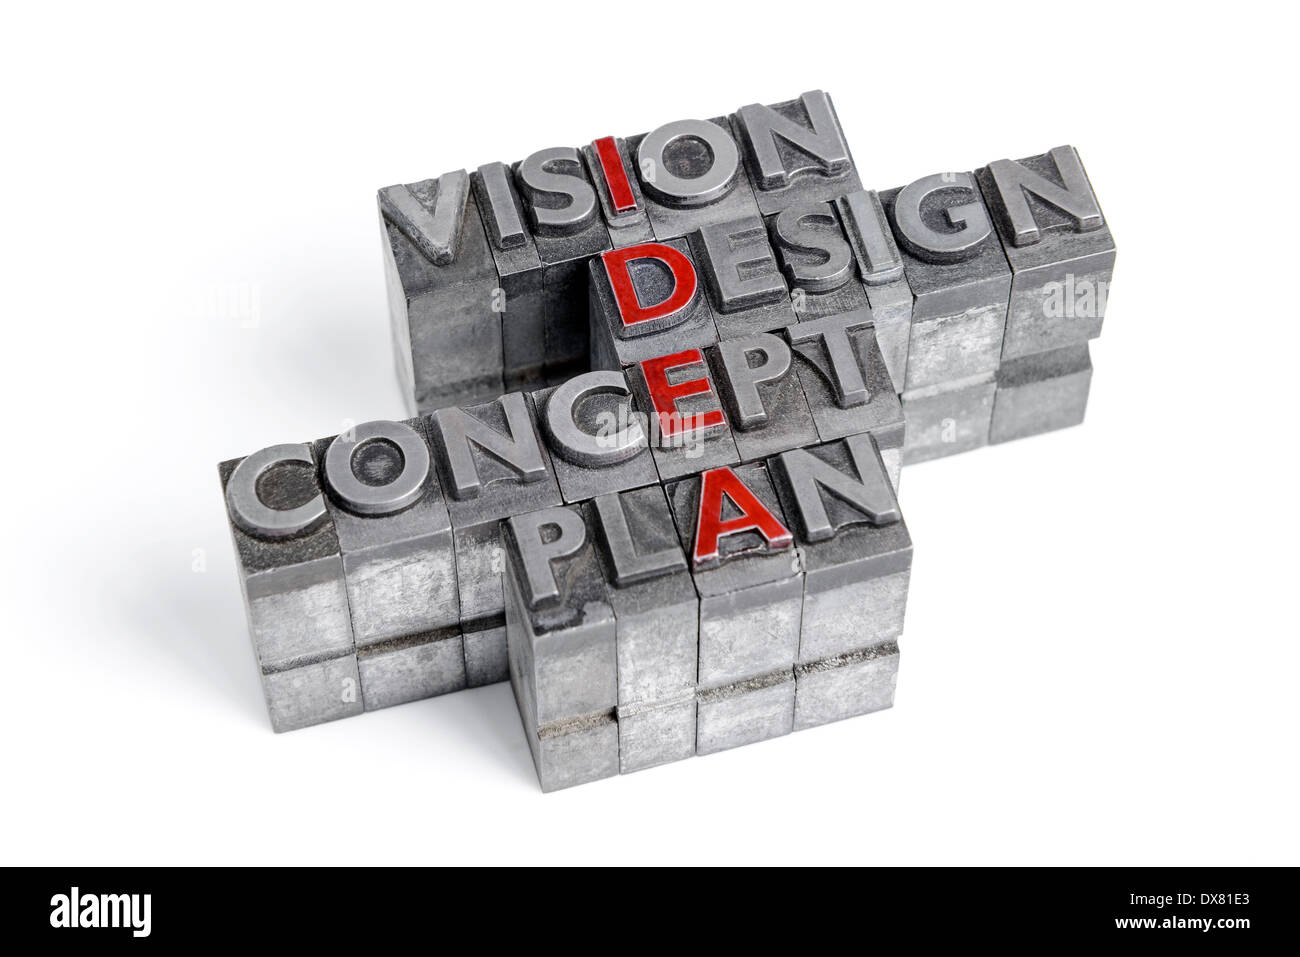 Idea as an acronym with the words Vision Design Concept and Plan in old metal letterpress printing blocks isolated on white. - Stock Image